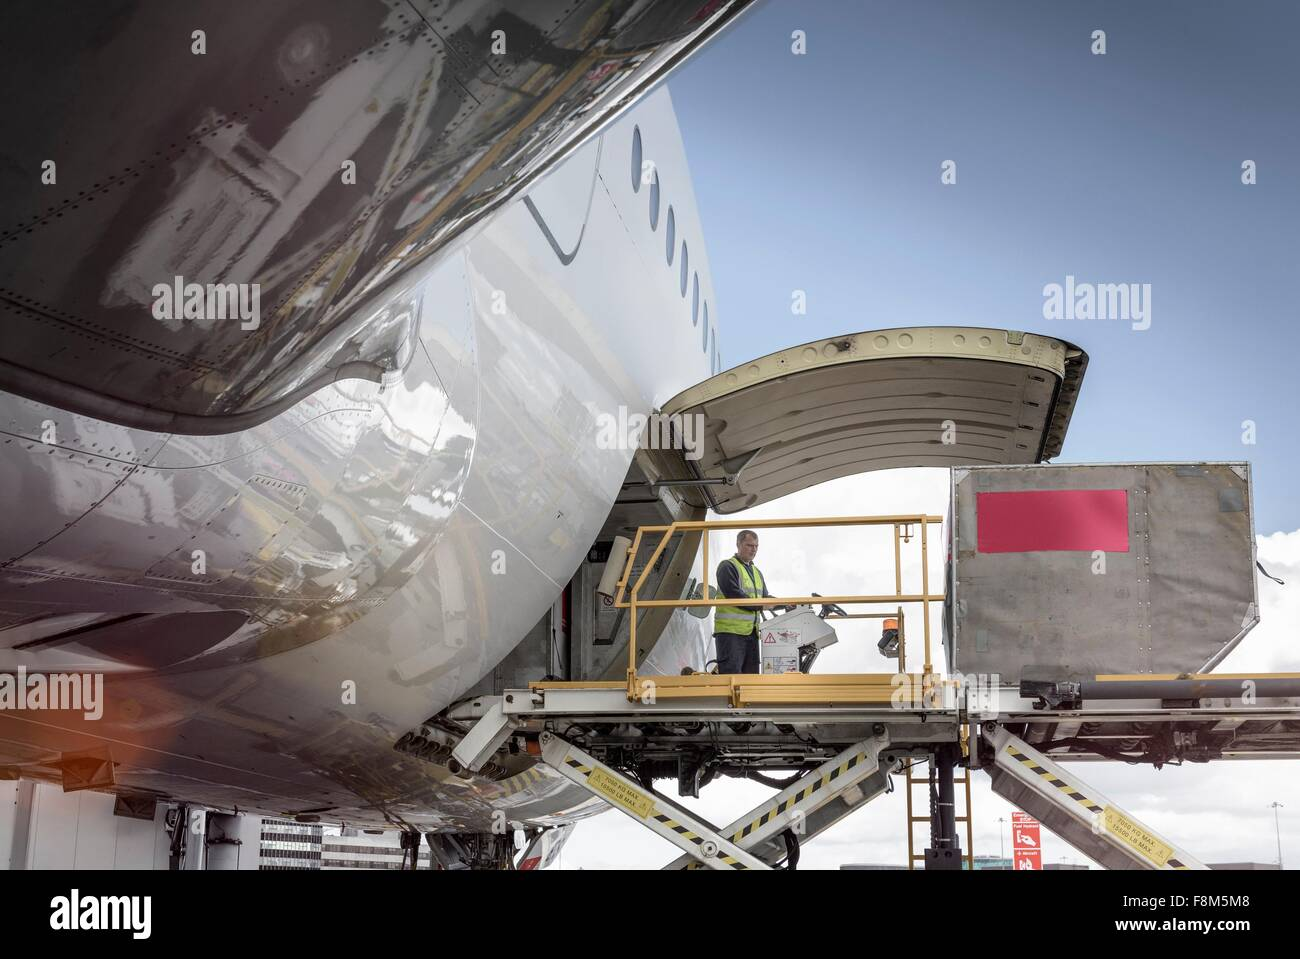 Freight loader on A380 aircraft - Stock Image